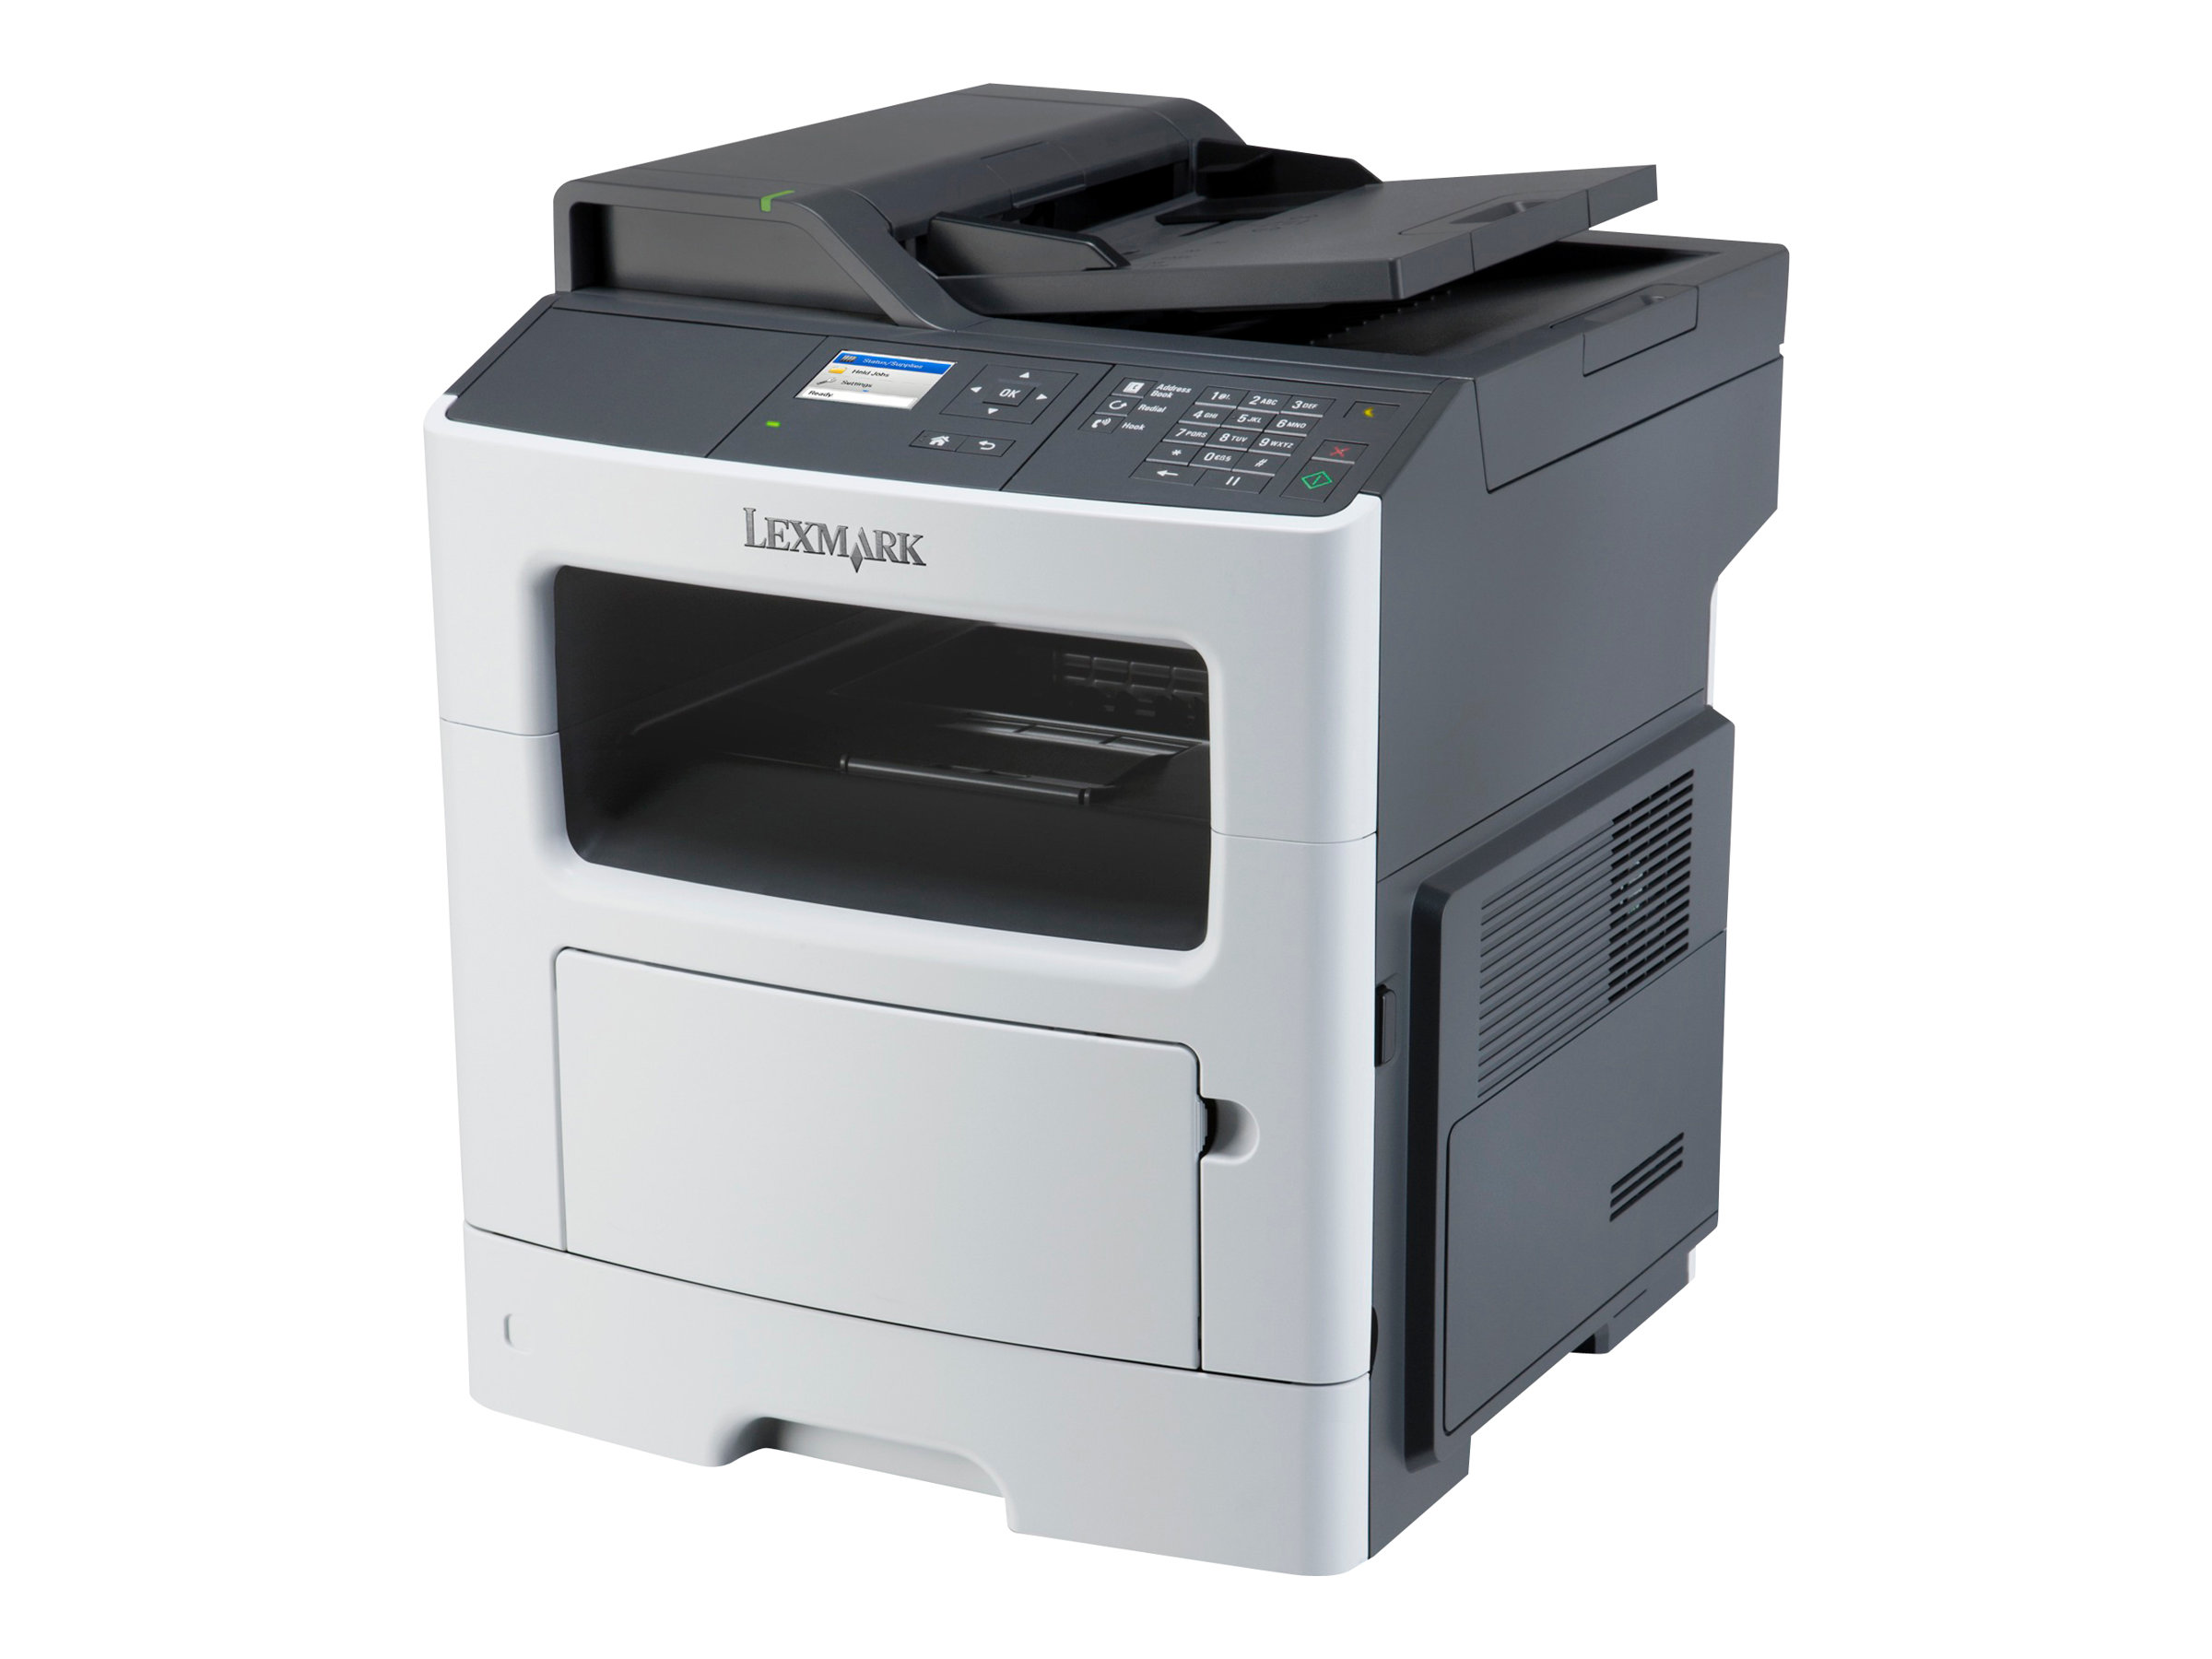 Lexmark MX310dn - Multifunktionsdrucker - s/w - Laser - Legal (216 x 356 mm) (Original) - Legal (Medien)